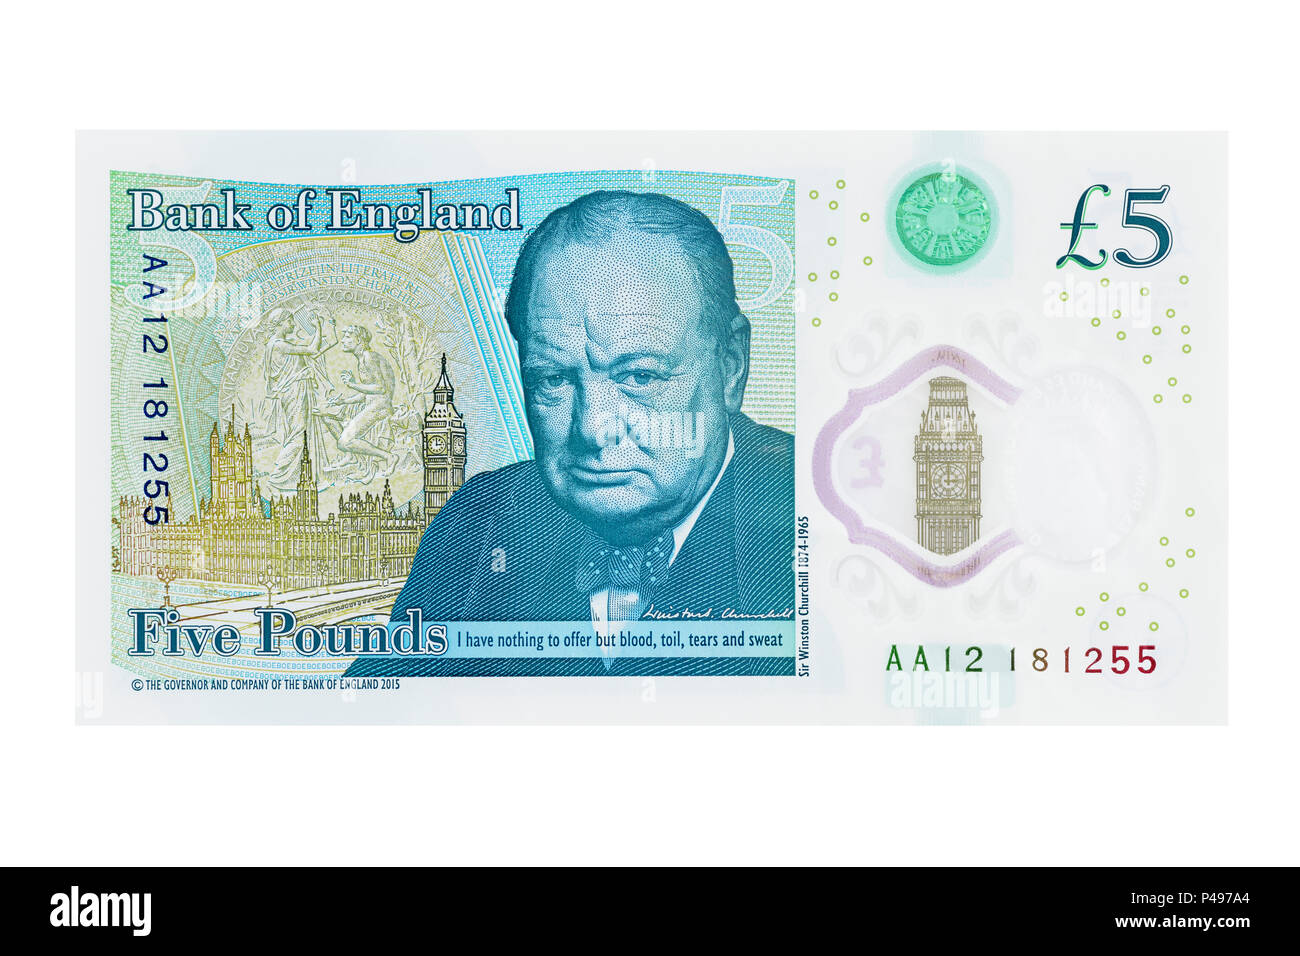 New Five Pound Note Showing Winston Churchill, UK, Cut Out - Stock Image